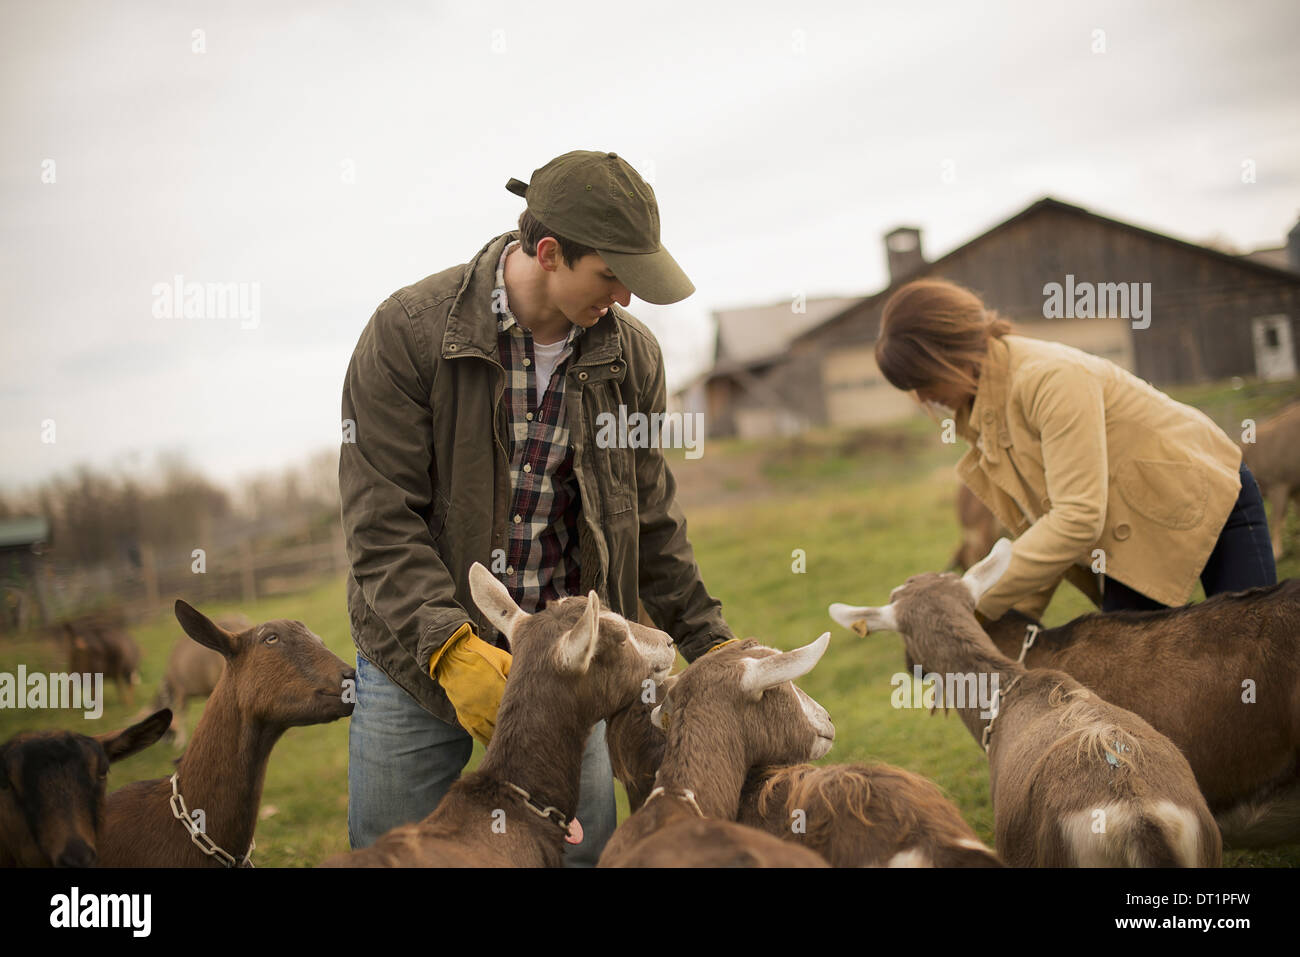 Dairy Farm Farmer working and tending to the animals - Stock Image